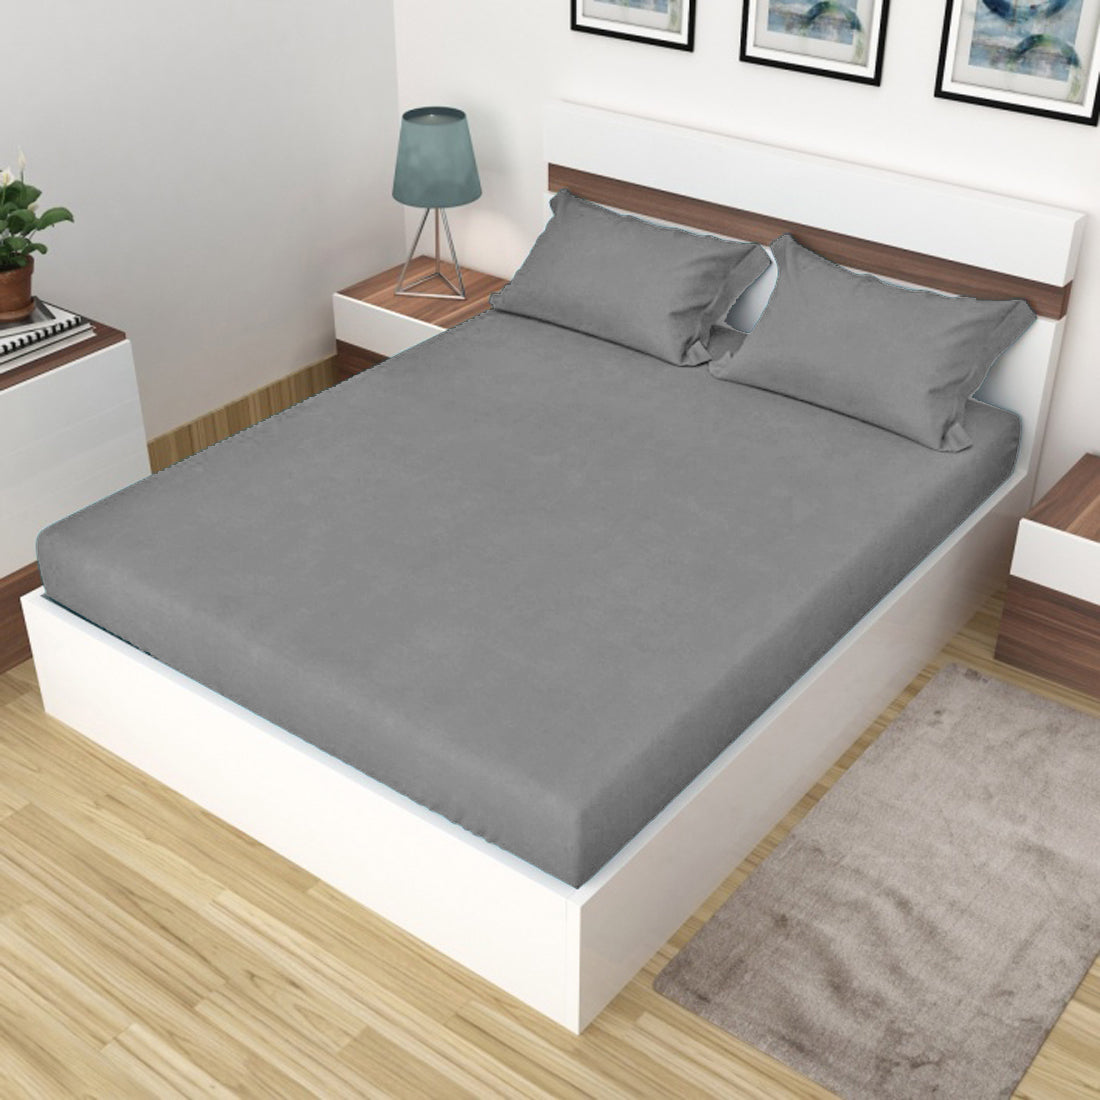 AURAVE Plain Cotton 210 TC Fitted Single Bedsheet - 36 x 72 inches - Grey